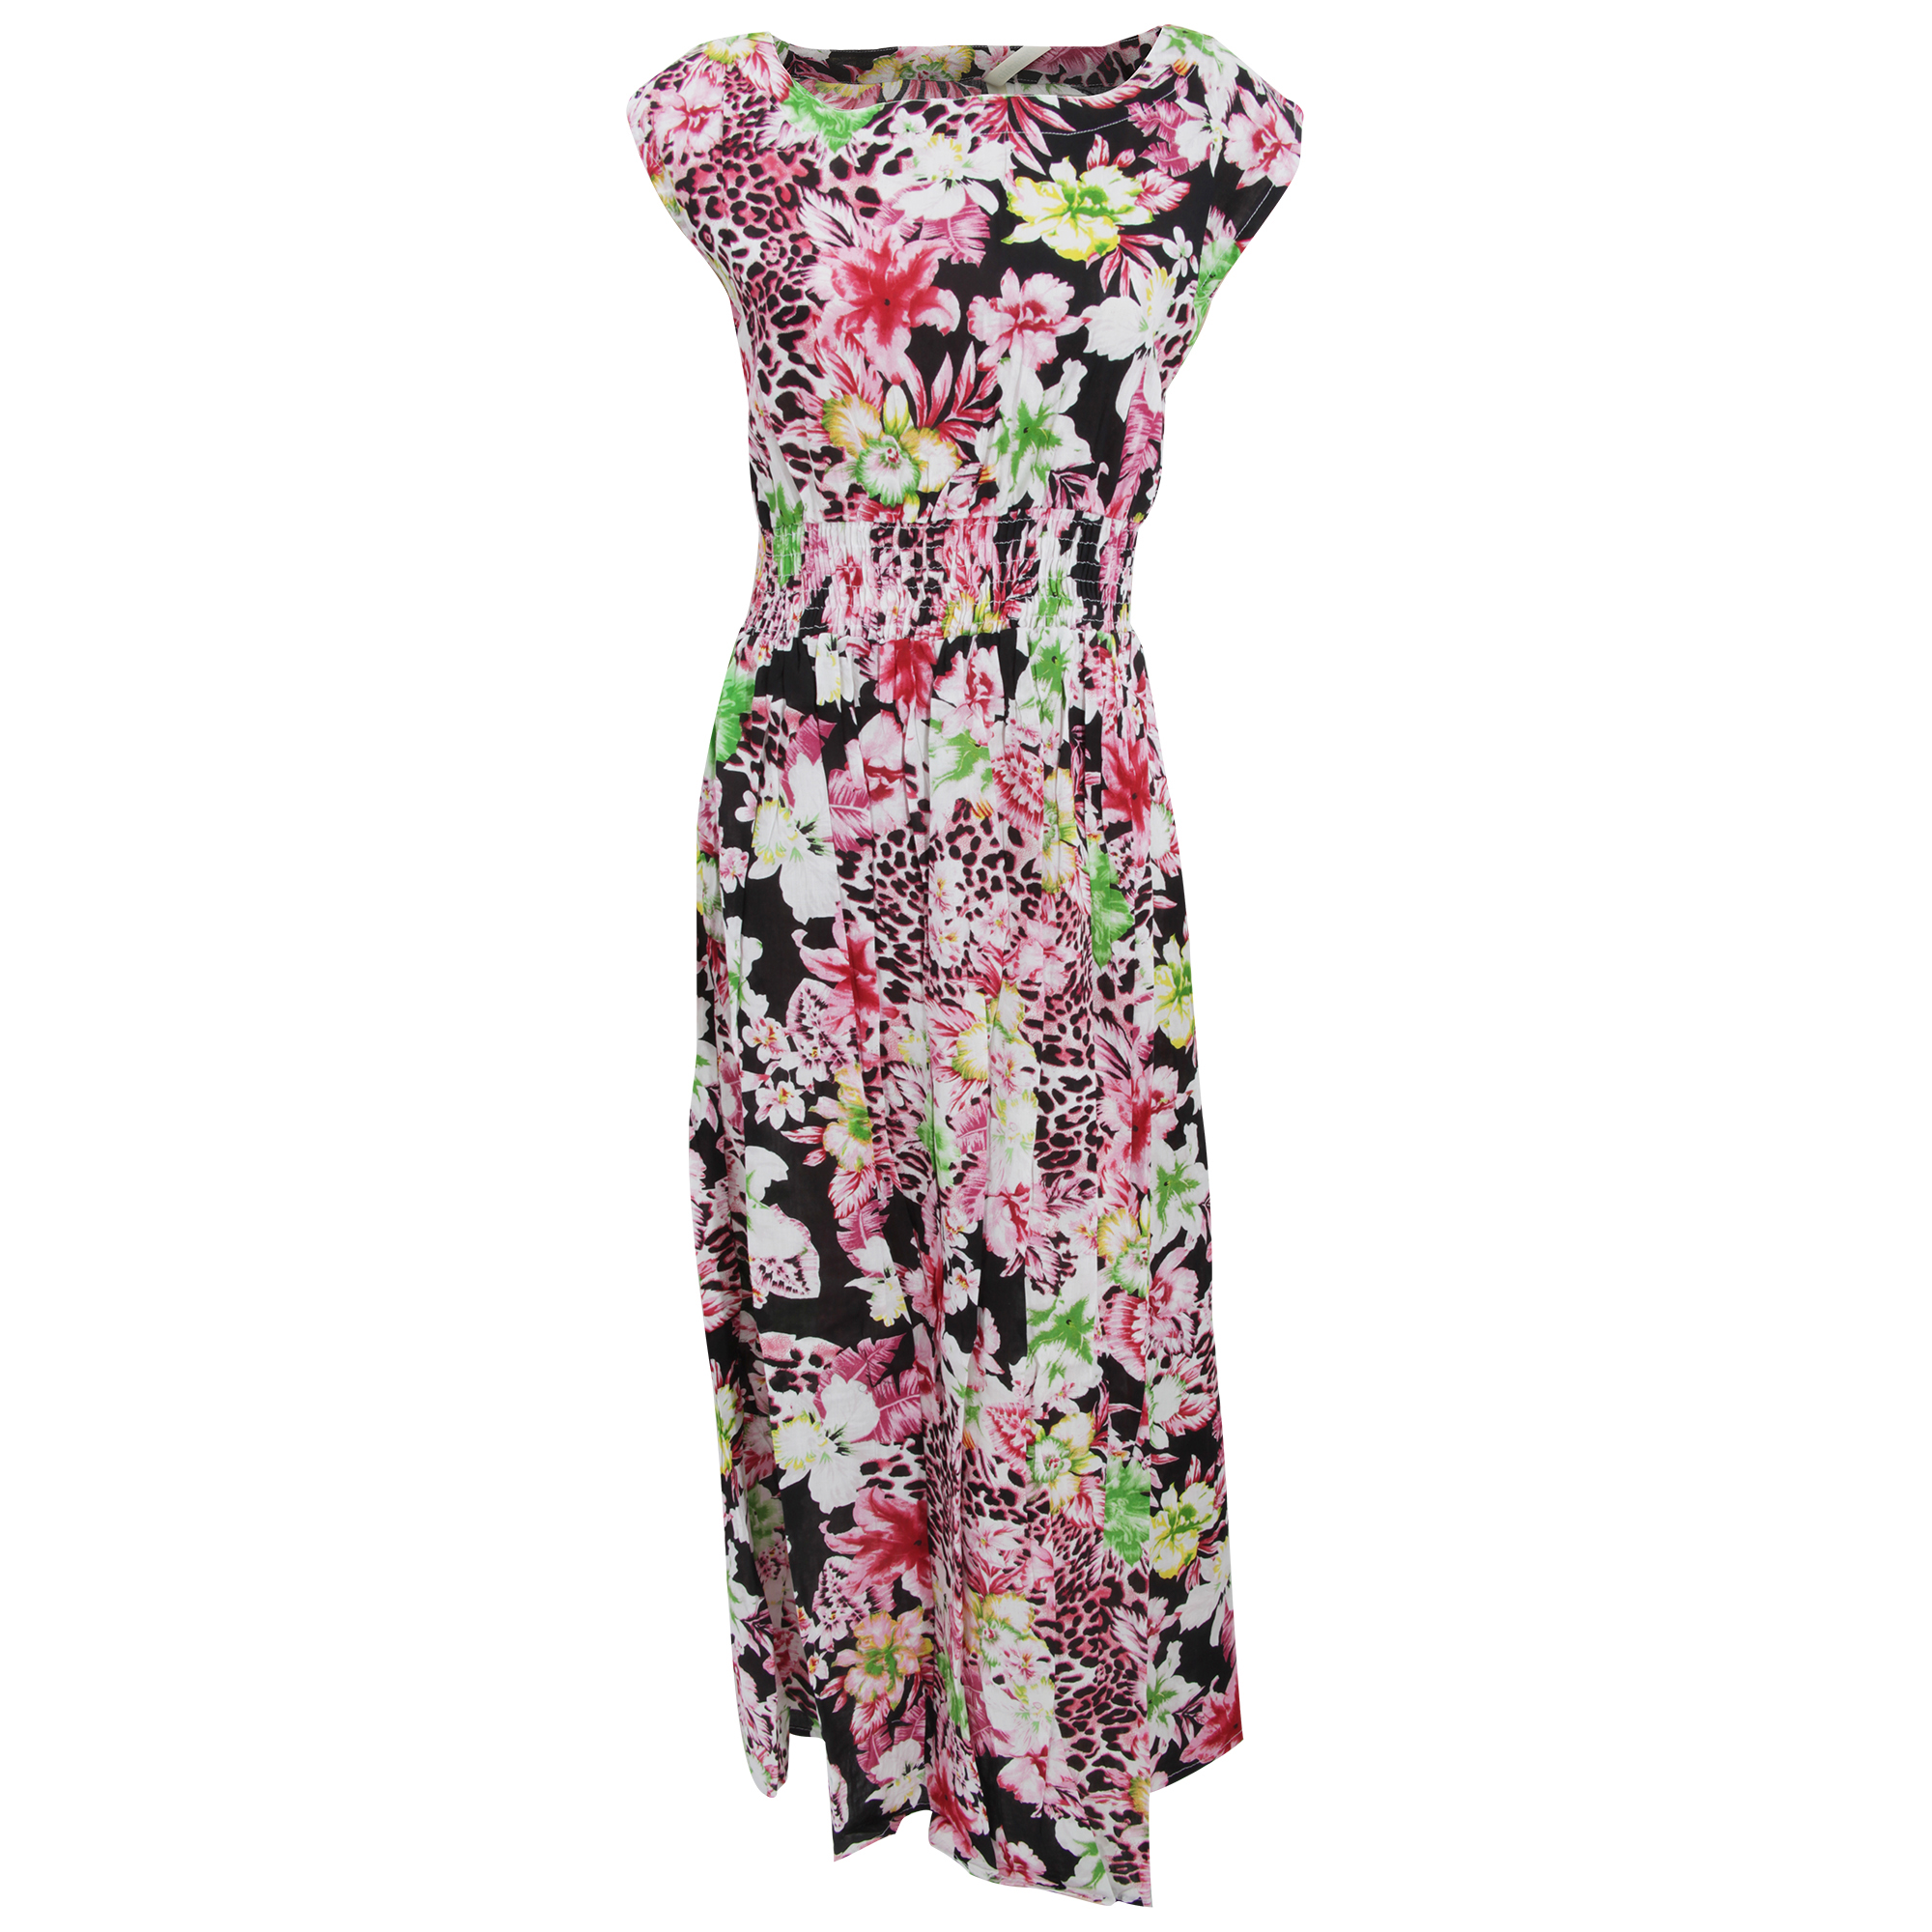 Bulk, Wholesale, Job Lot, Clearance Assorted Clothing (Dresses, Tops, Footwear And More) (Box 19) (Womens Pink Floral Leopard Dresses (Set of 40))